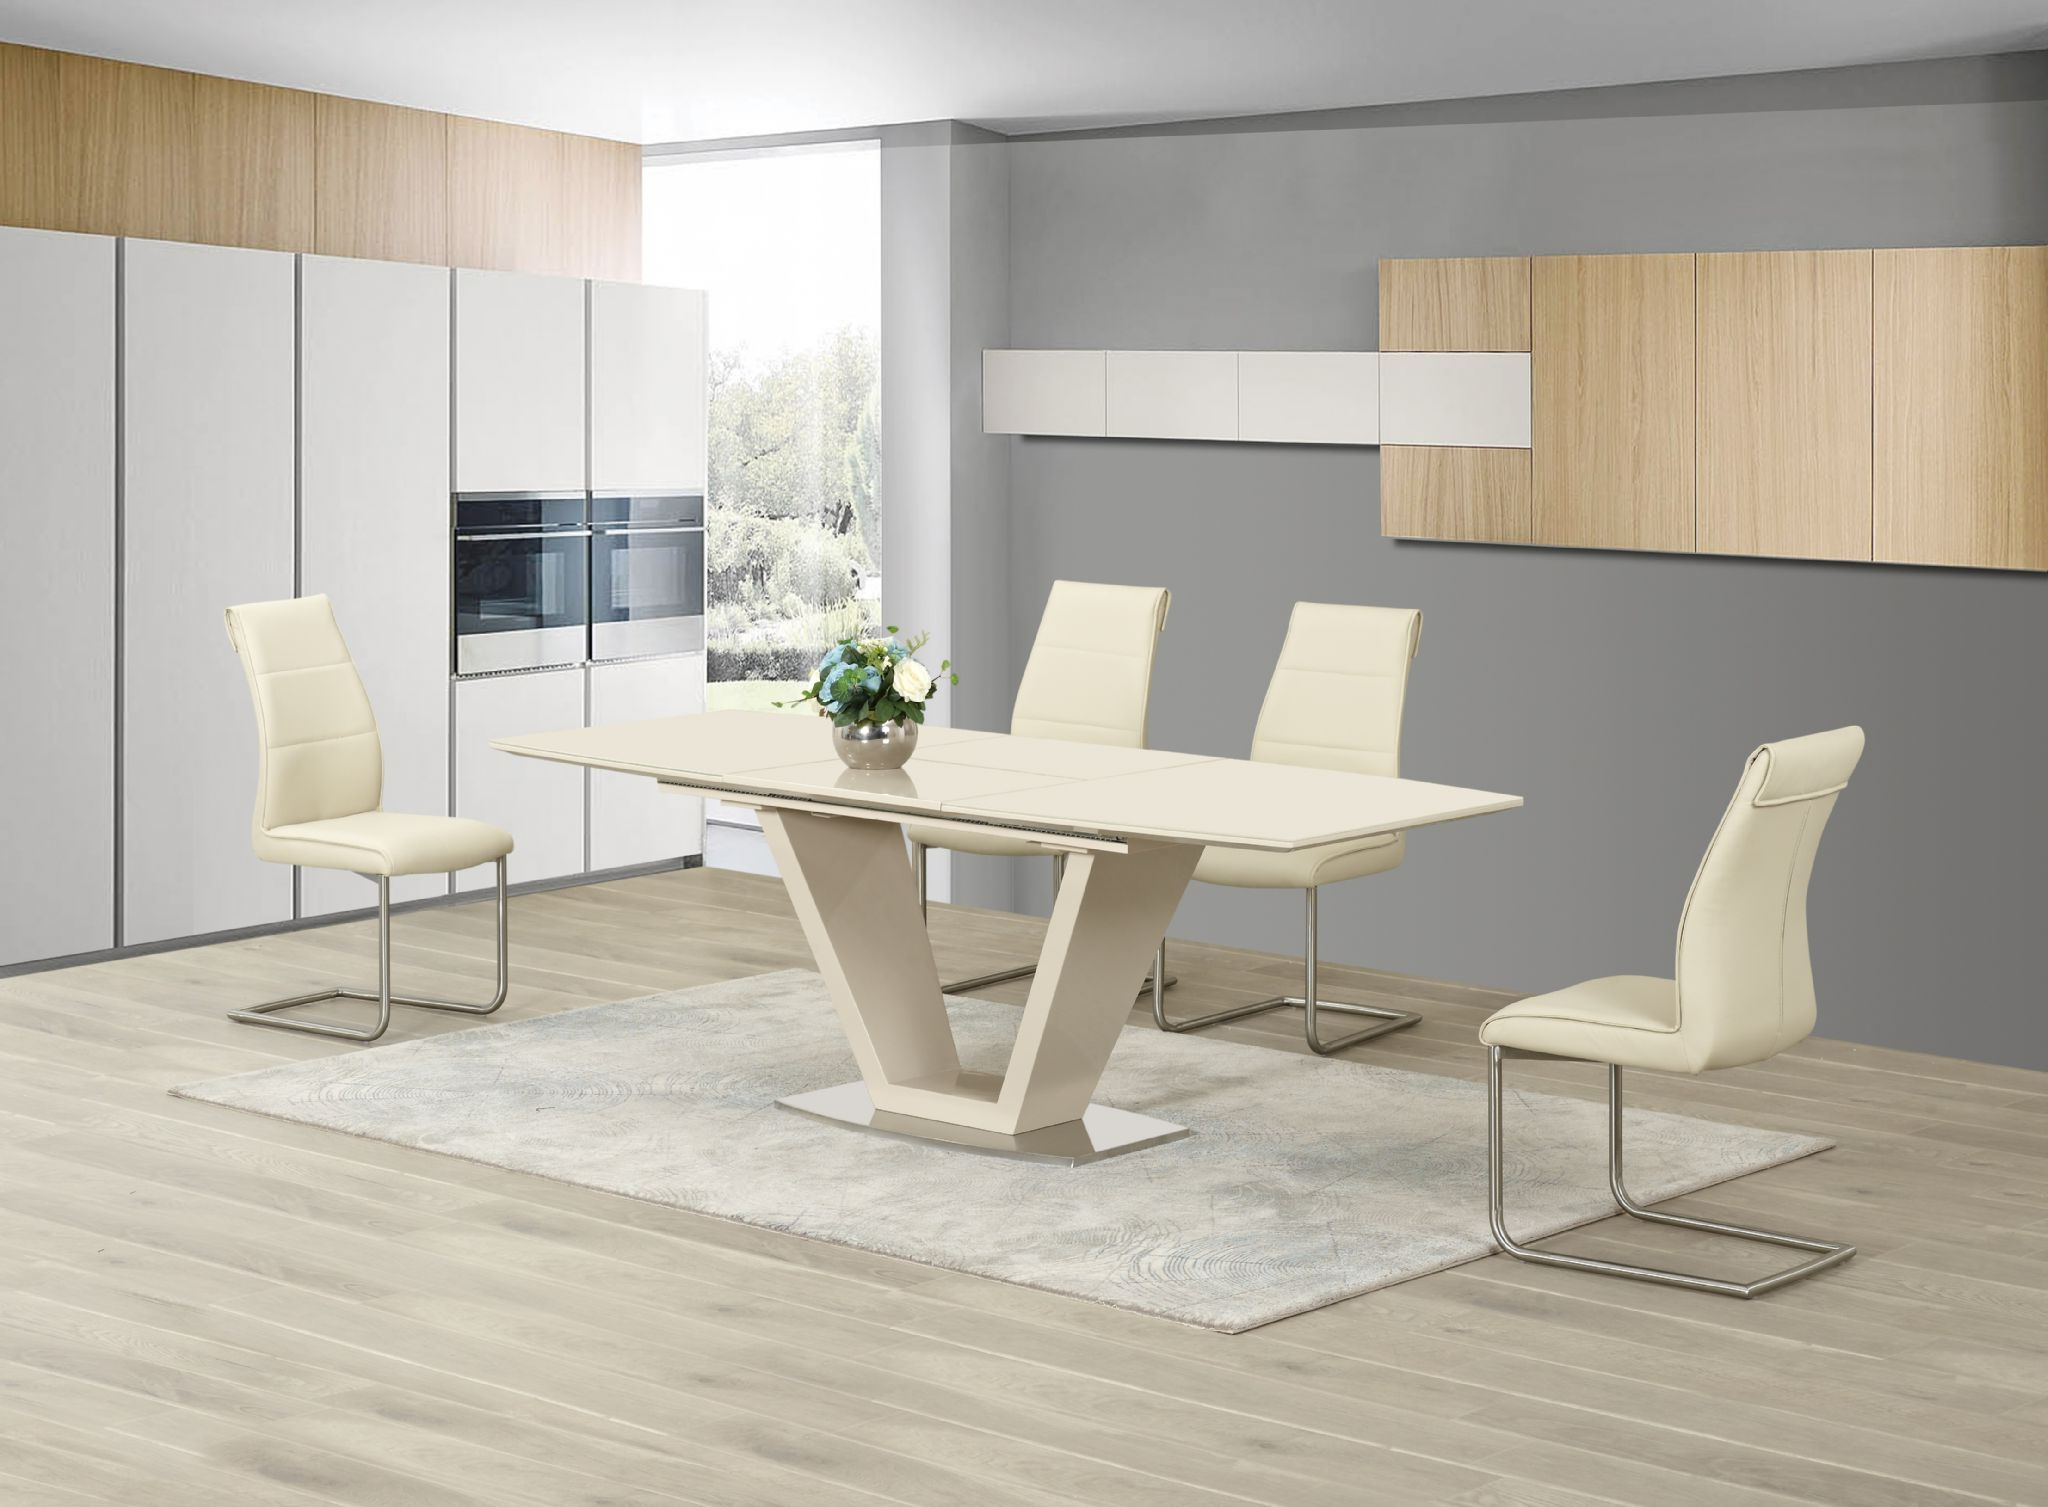 Preferred Floris Cream Extending Dining Table High Gloss Regarding 8 Seater Wood Contemporary Dining Tables With Extension Leaf (View 22 of 25)